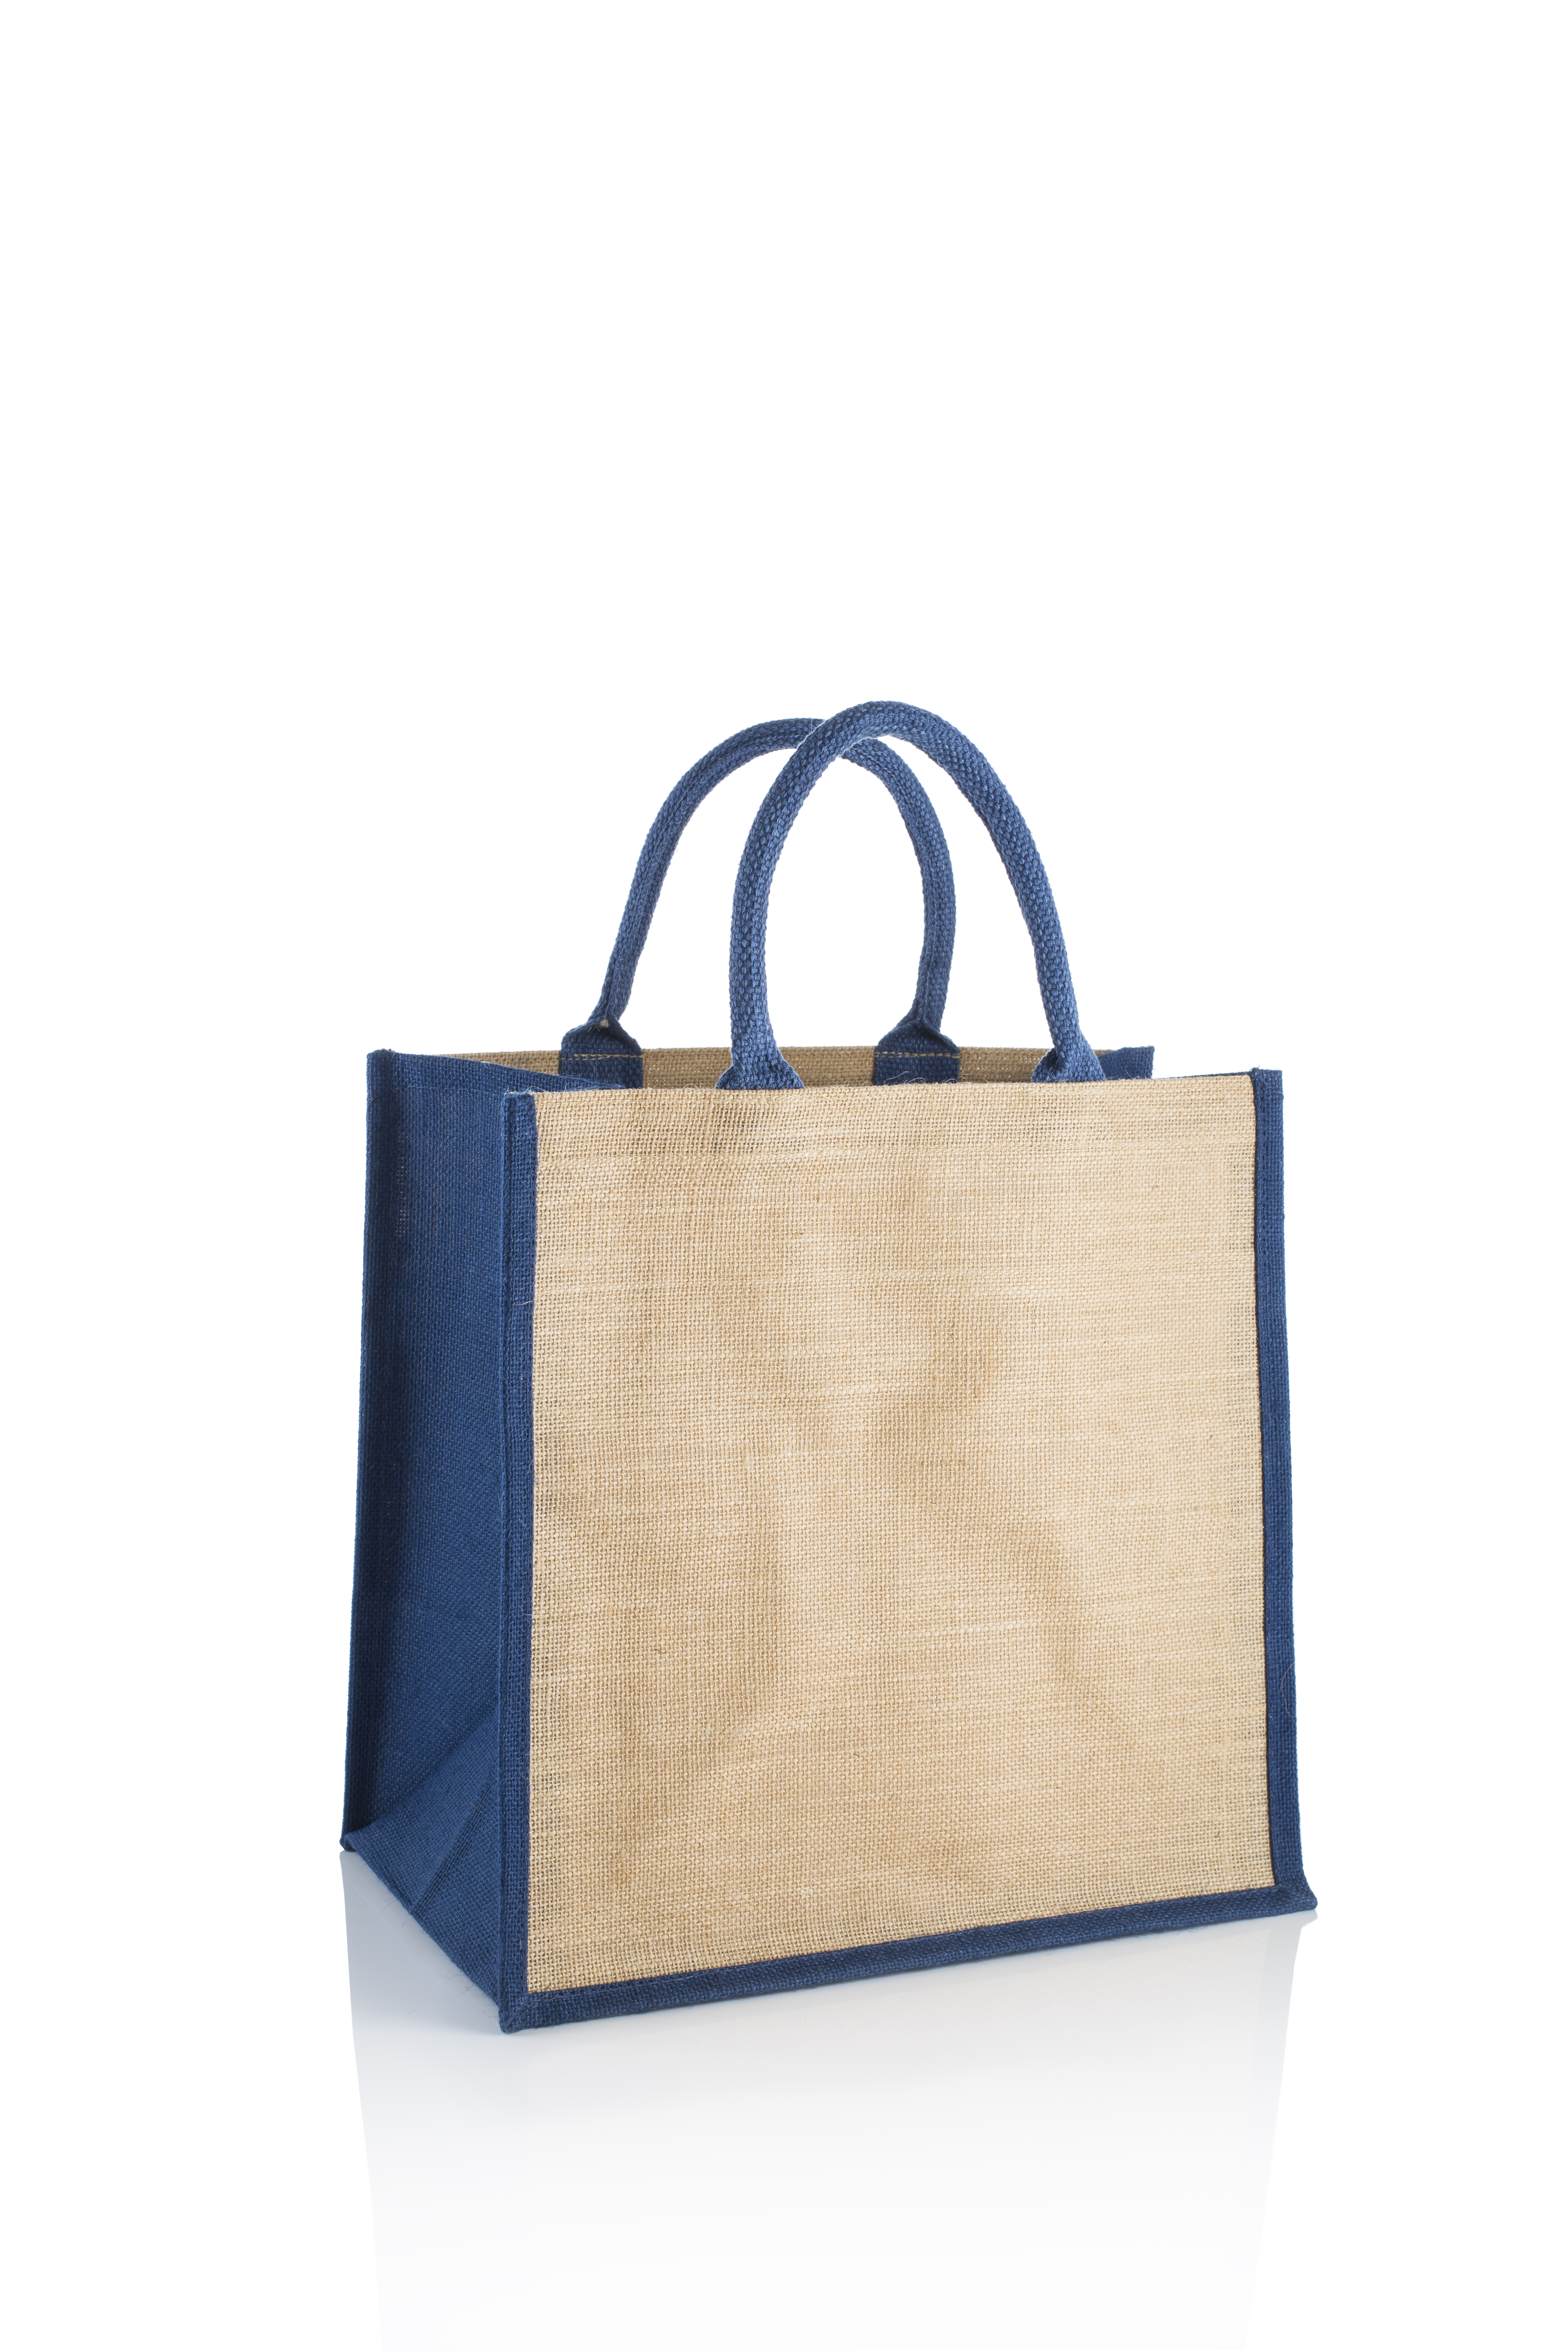 Blue Brecon Jute Bag - High Quality